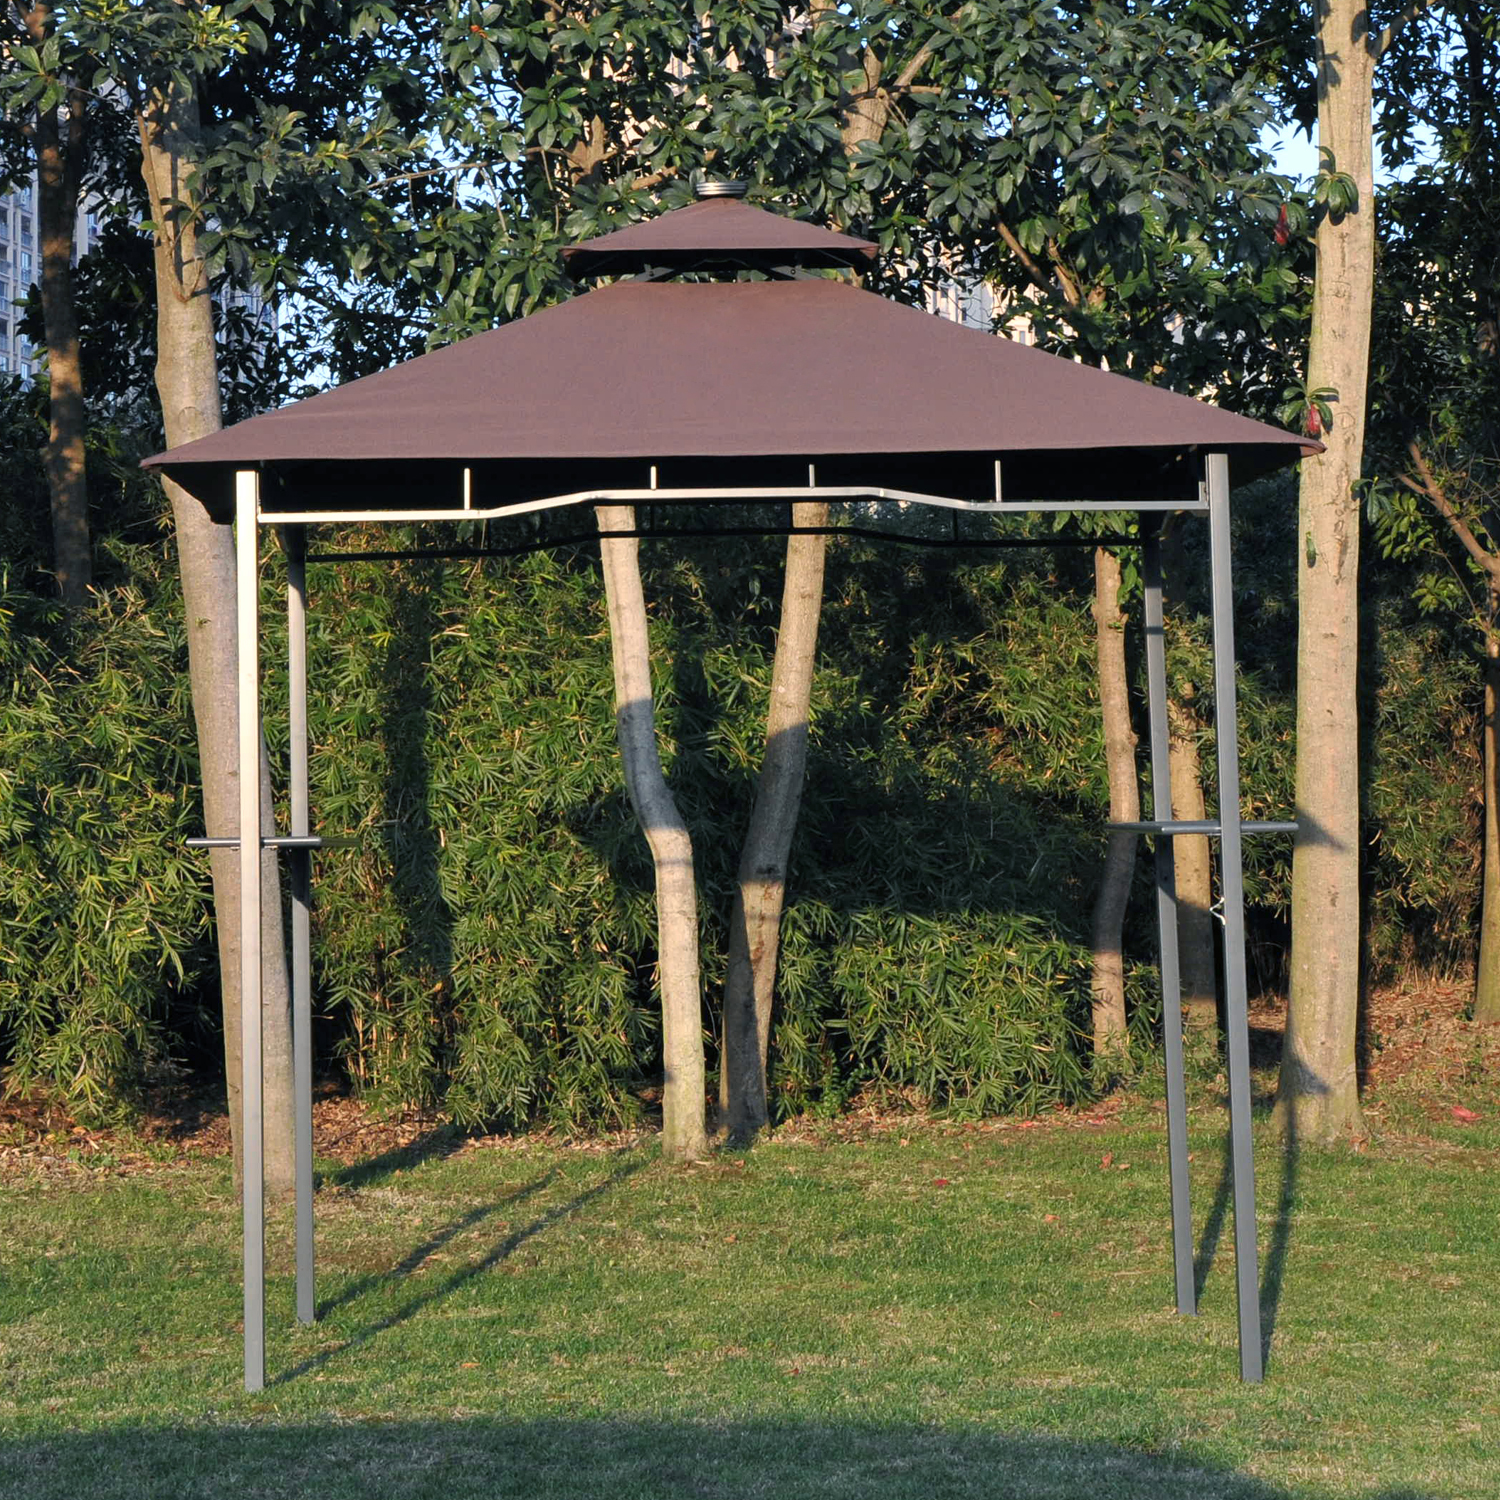 Image of £105.99 Outsunny Gazebo W/LED-Black/Coffee / BBQ 2 Tier Tent 4 LED Strips Outdoor Patio Canopy Party Shelter w/Solar Panel Coffee Lighting Wedding Garden 84C-036 5056029889466